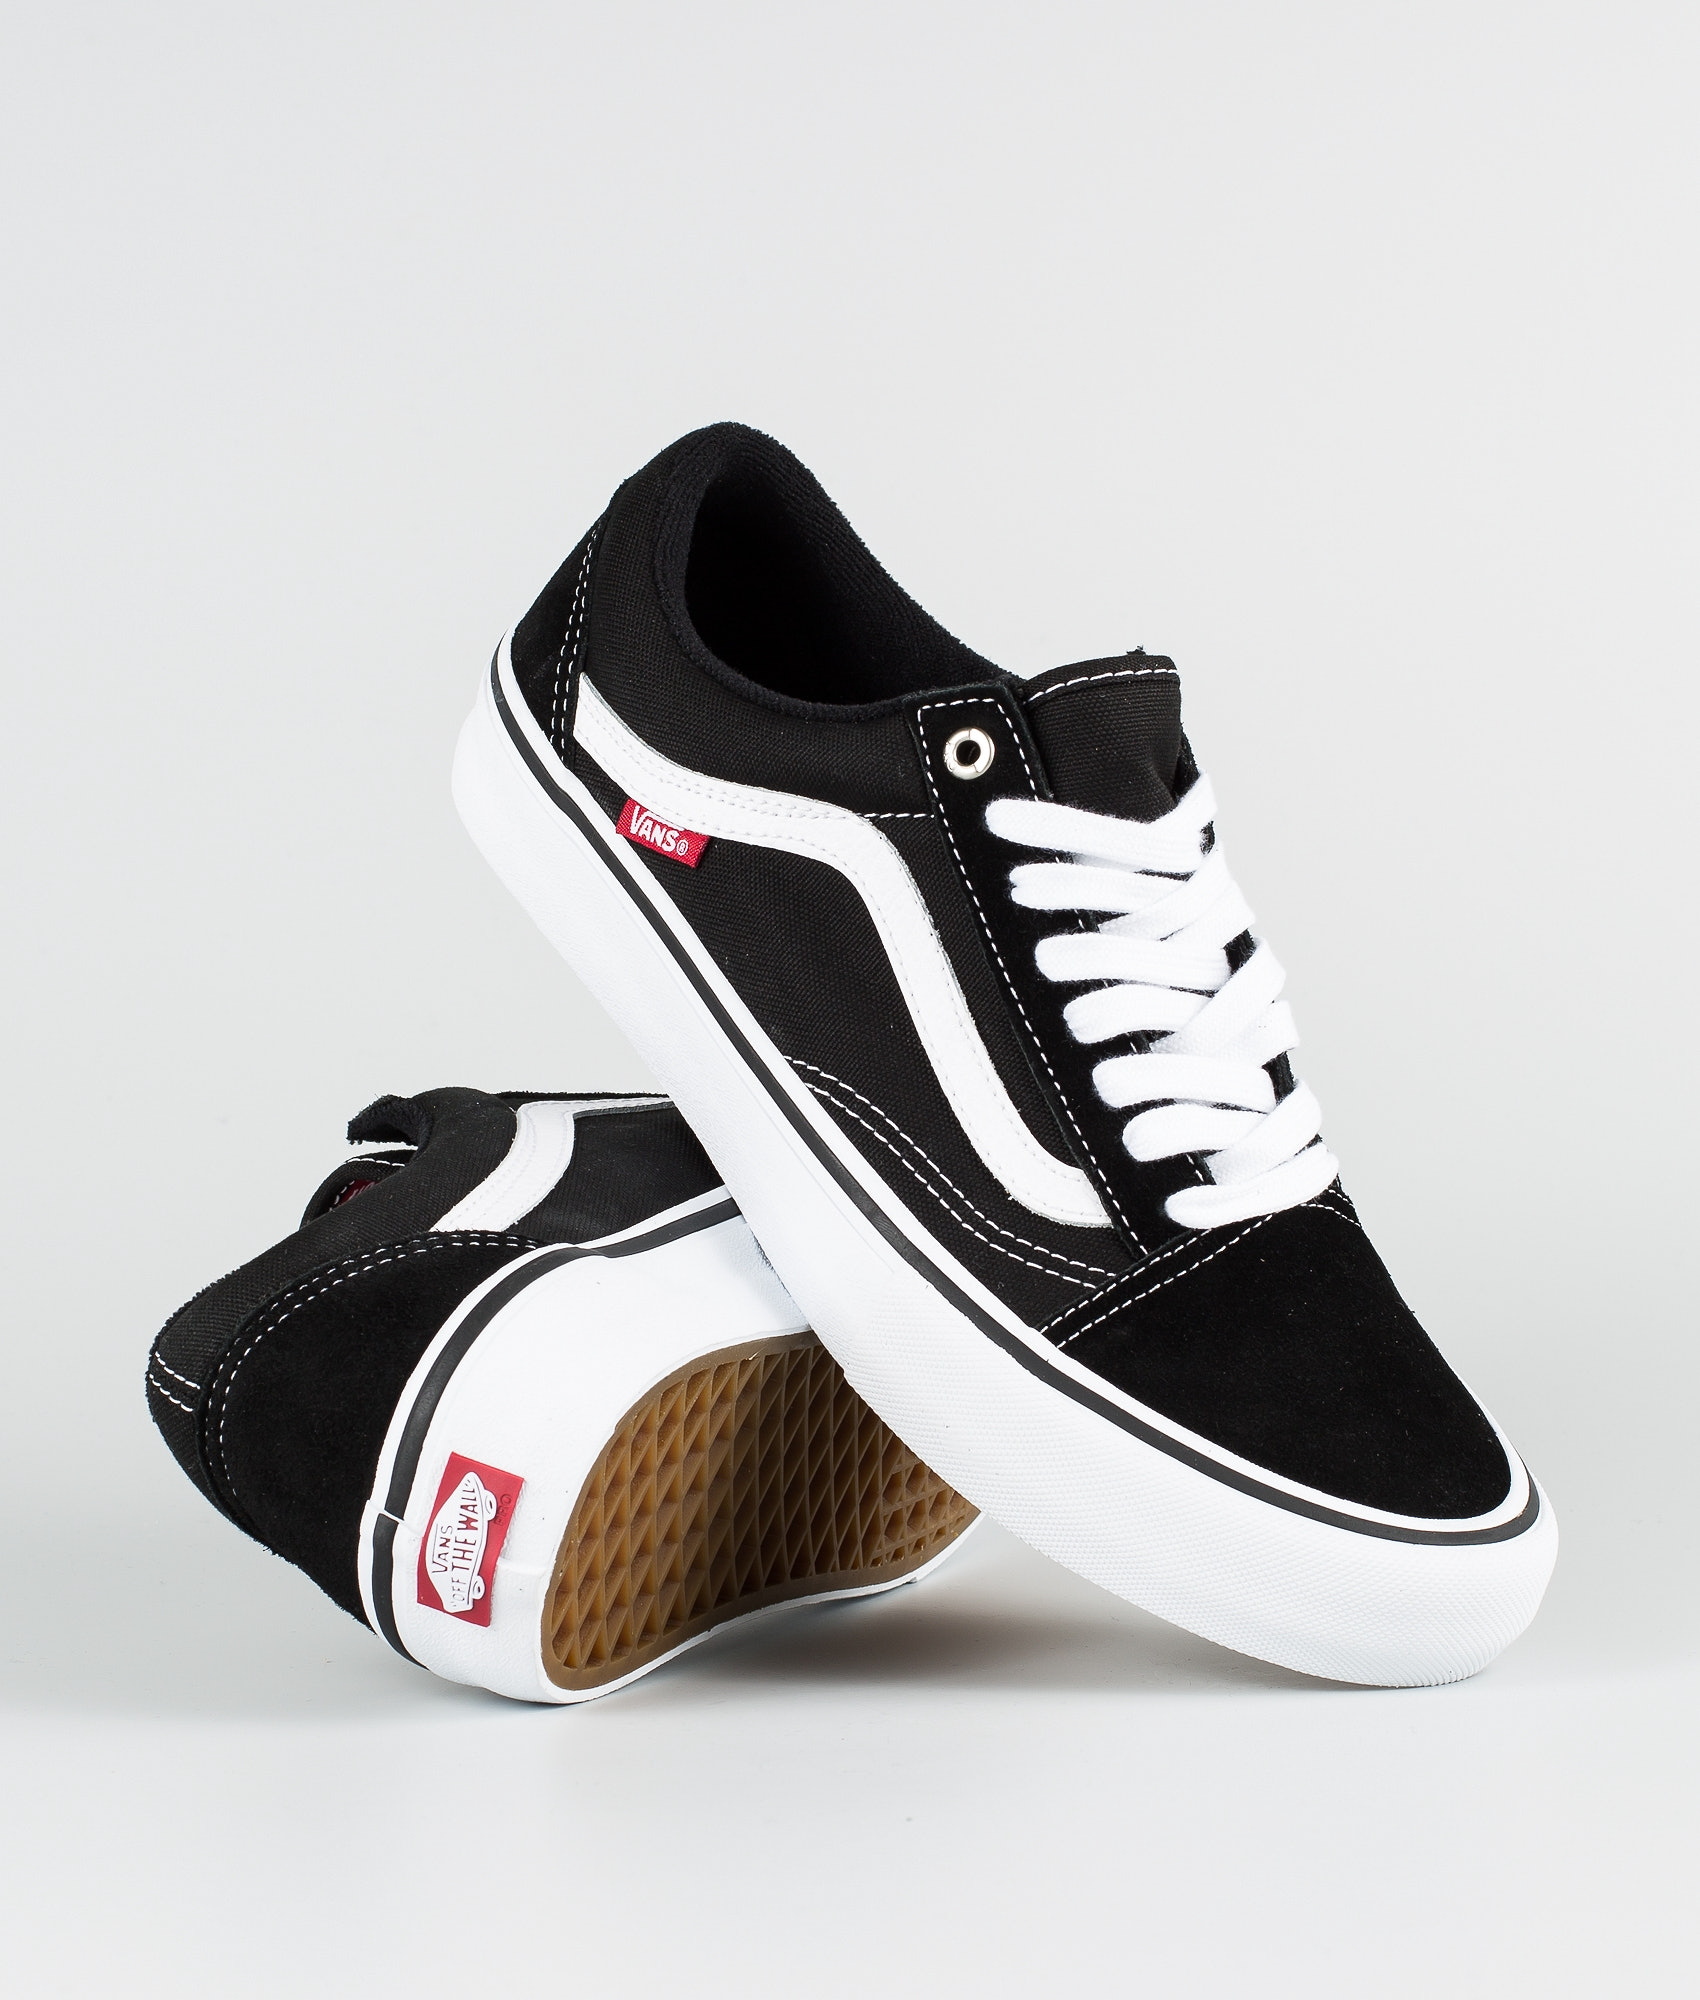 8c97de72063 Vans Old Skool Pro Shoes Black White - Ridestore.com